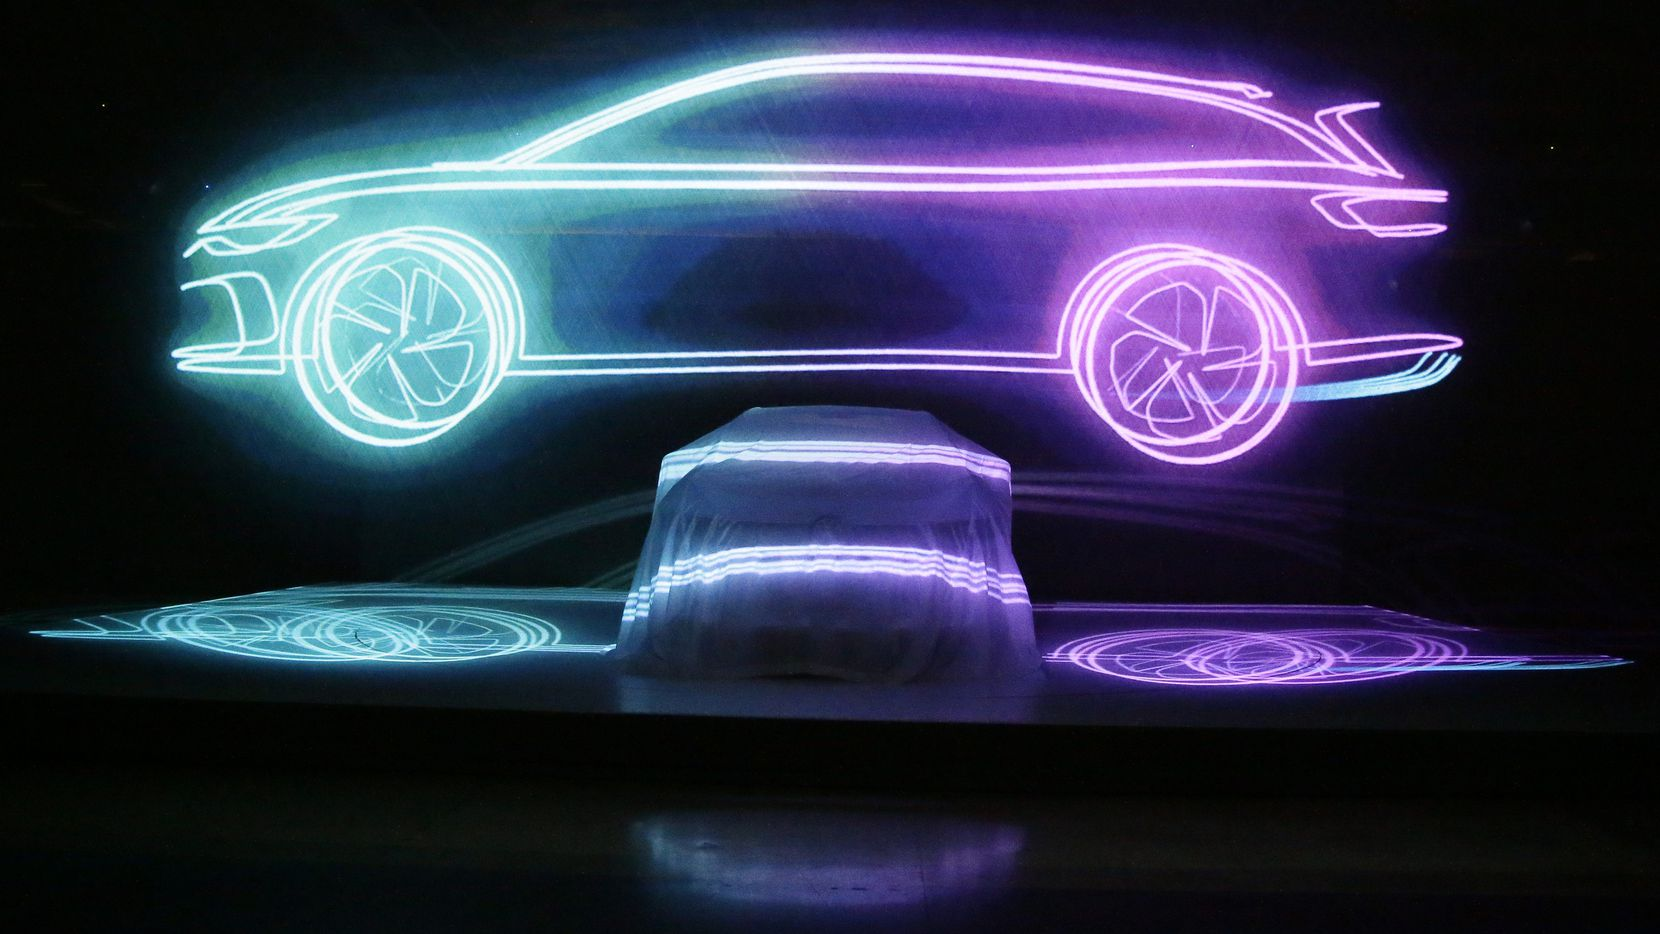 Volkswagen unveiled its I.D. Space Vizzion autonomous electric concept car in Los Angeles Nov. 19. Scott Burns says a shift to electric vehicles is more important than going back to the moon.